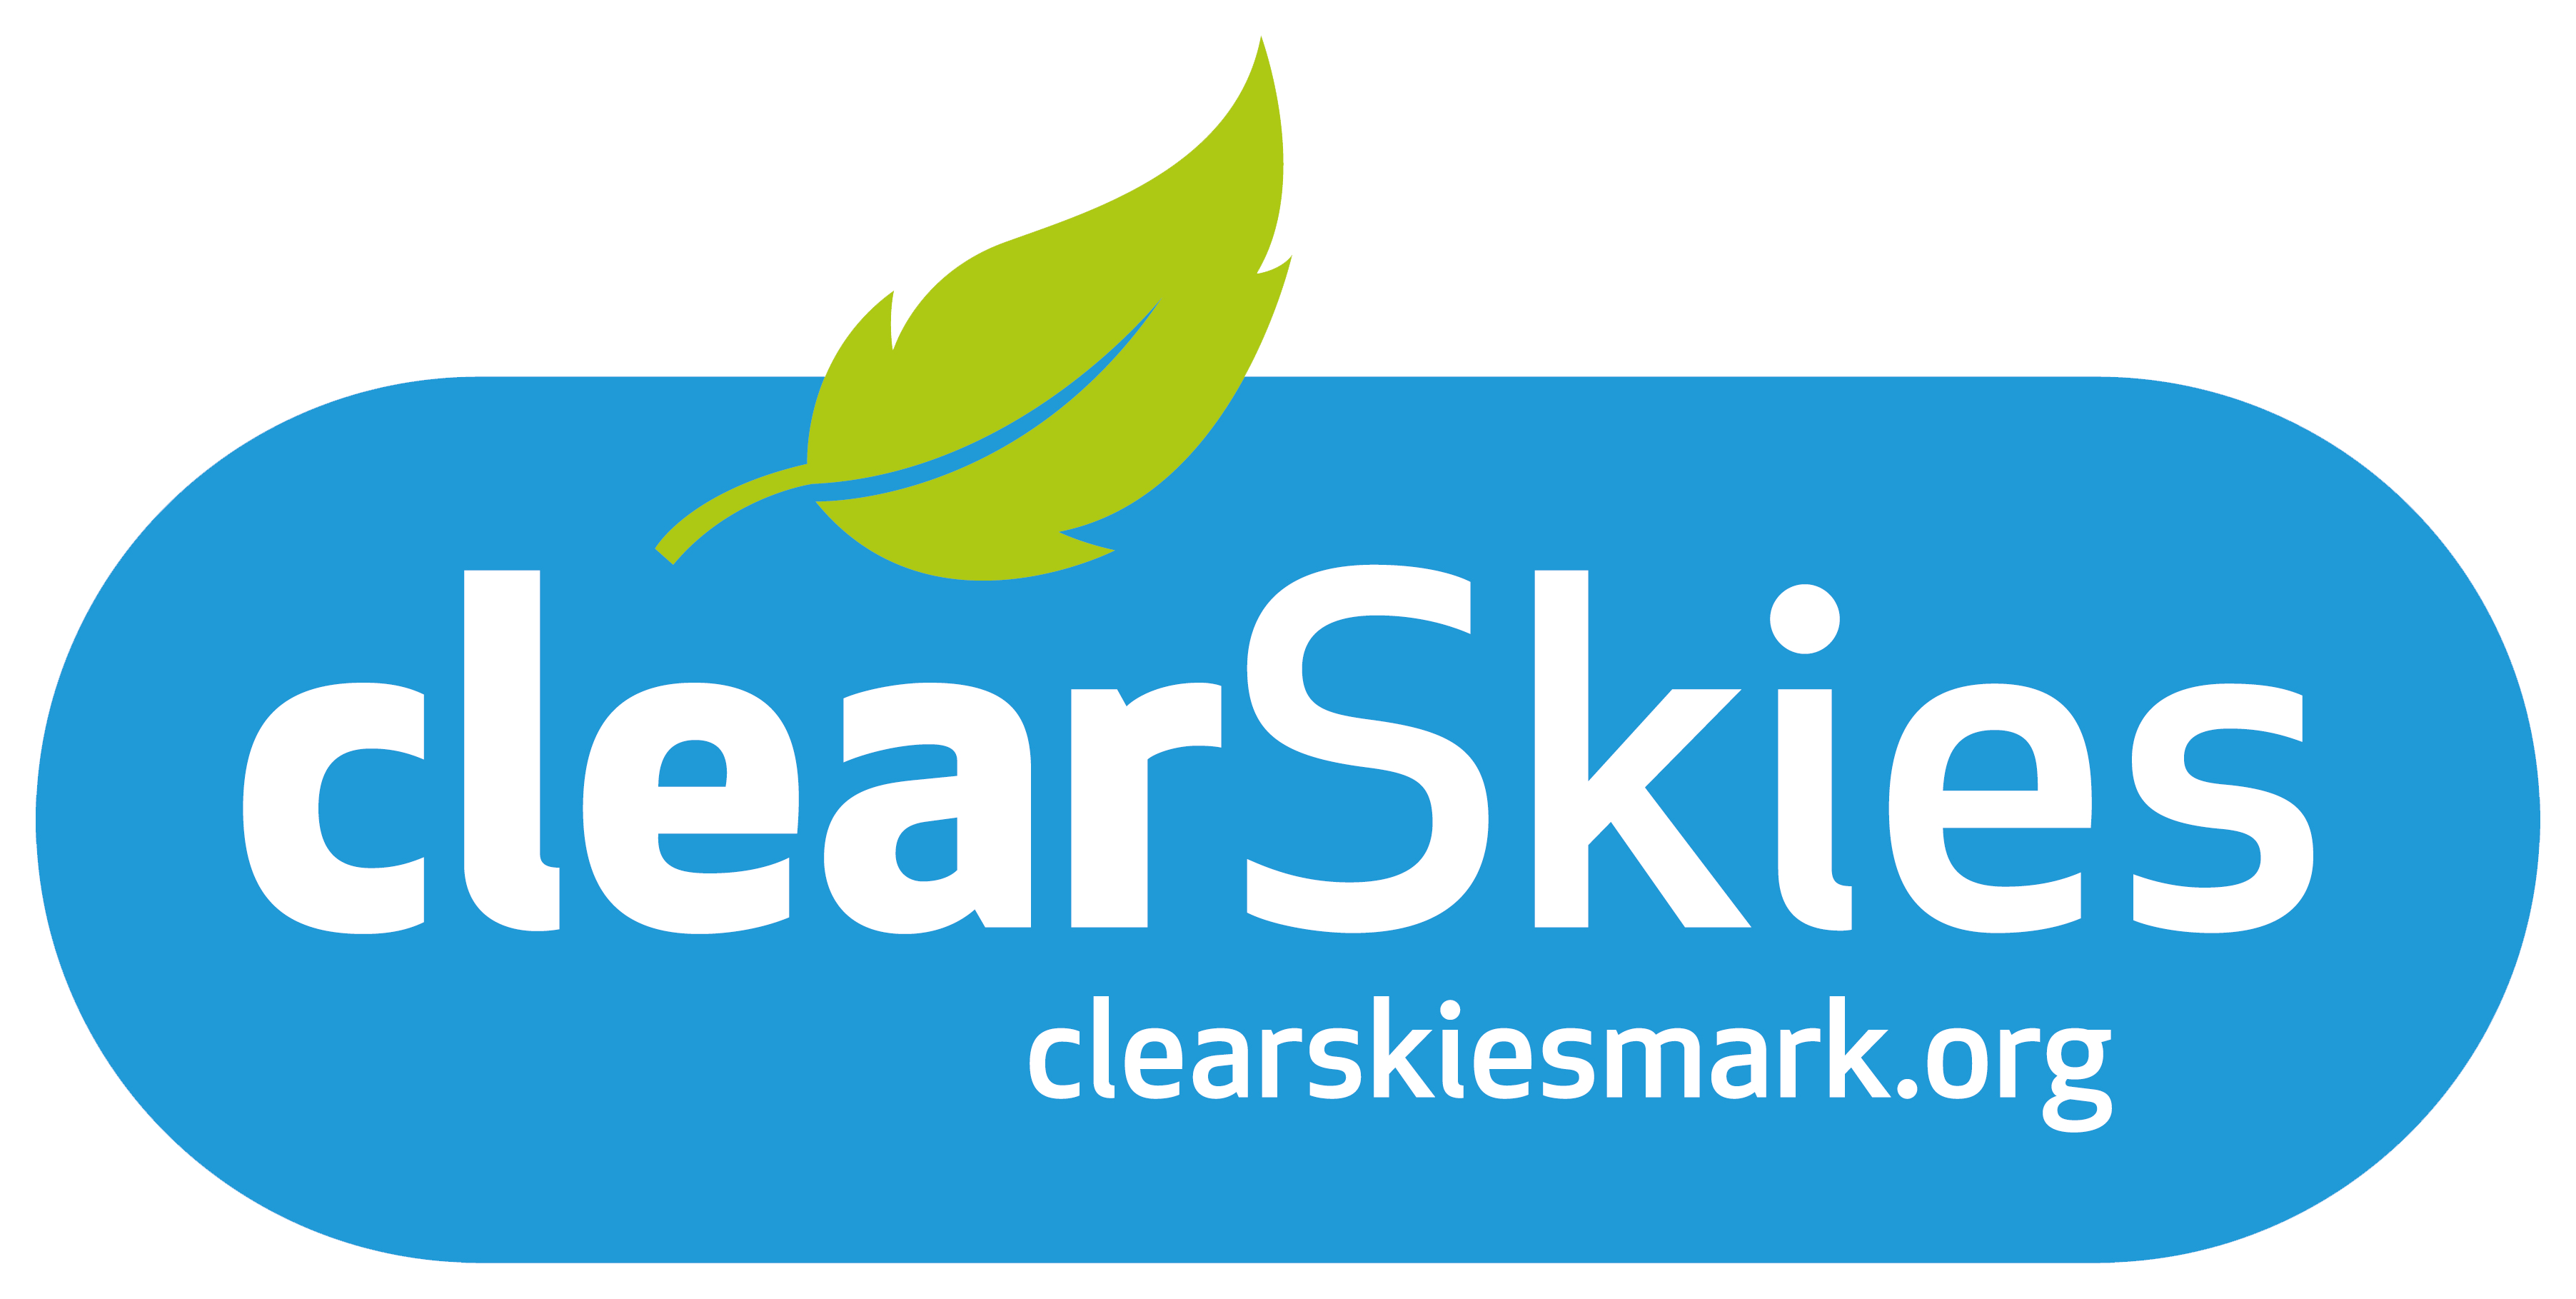 ClearSkies unclassified